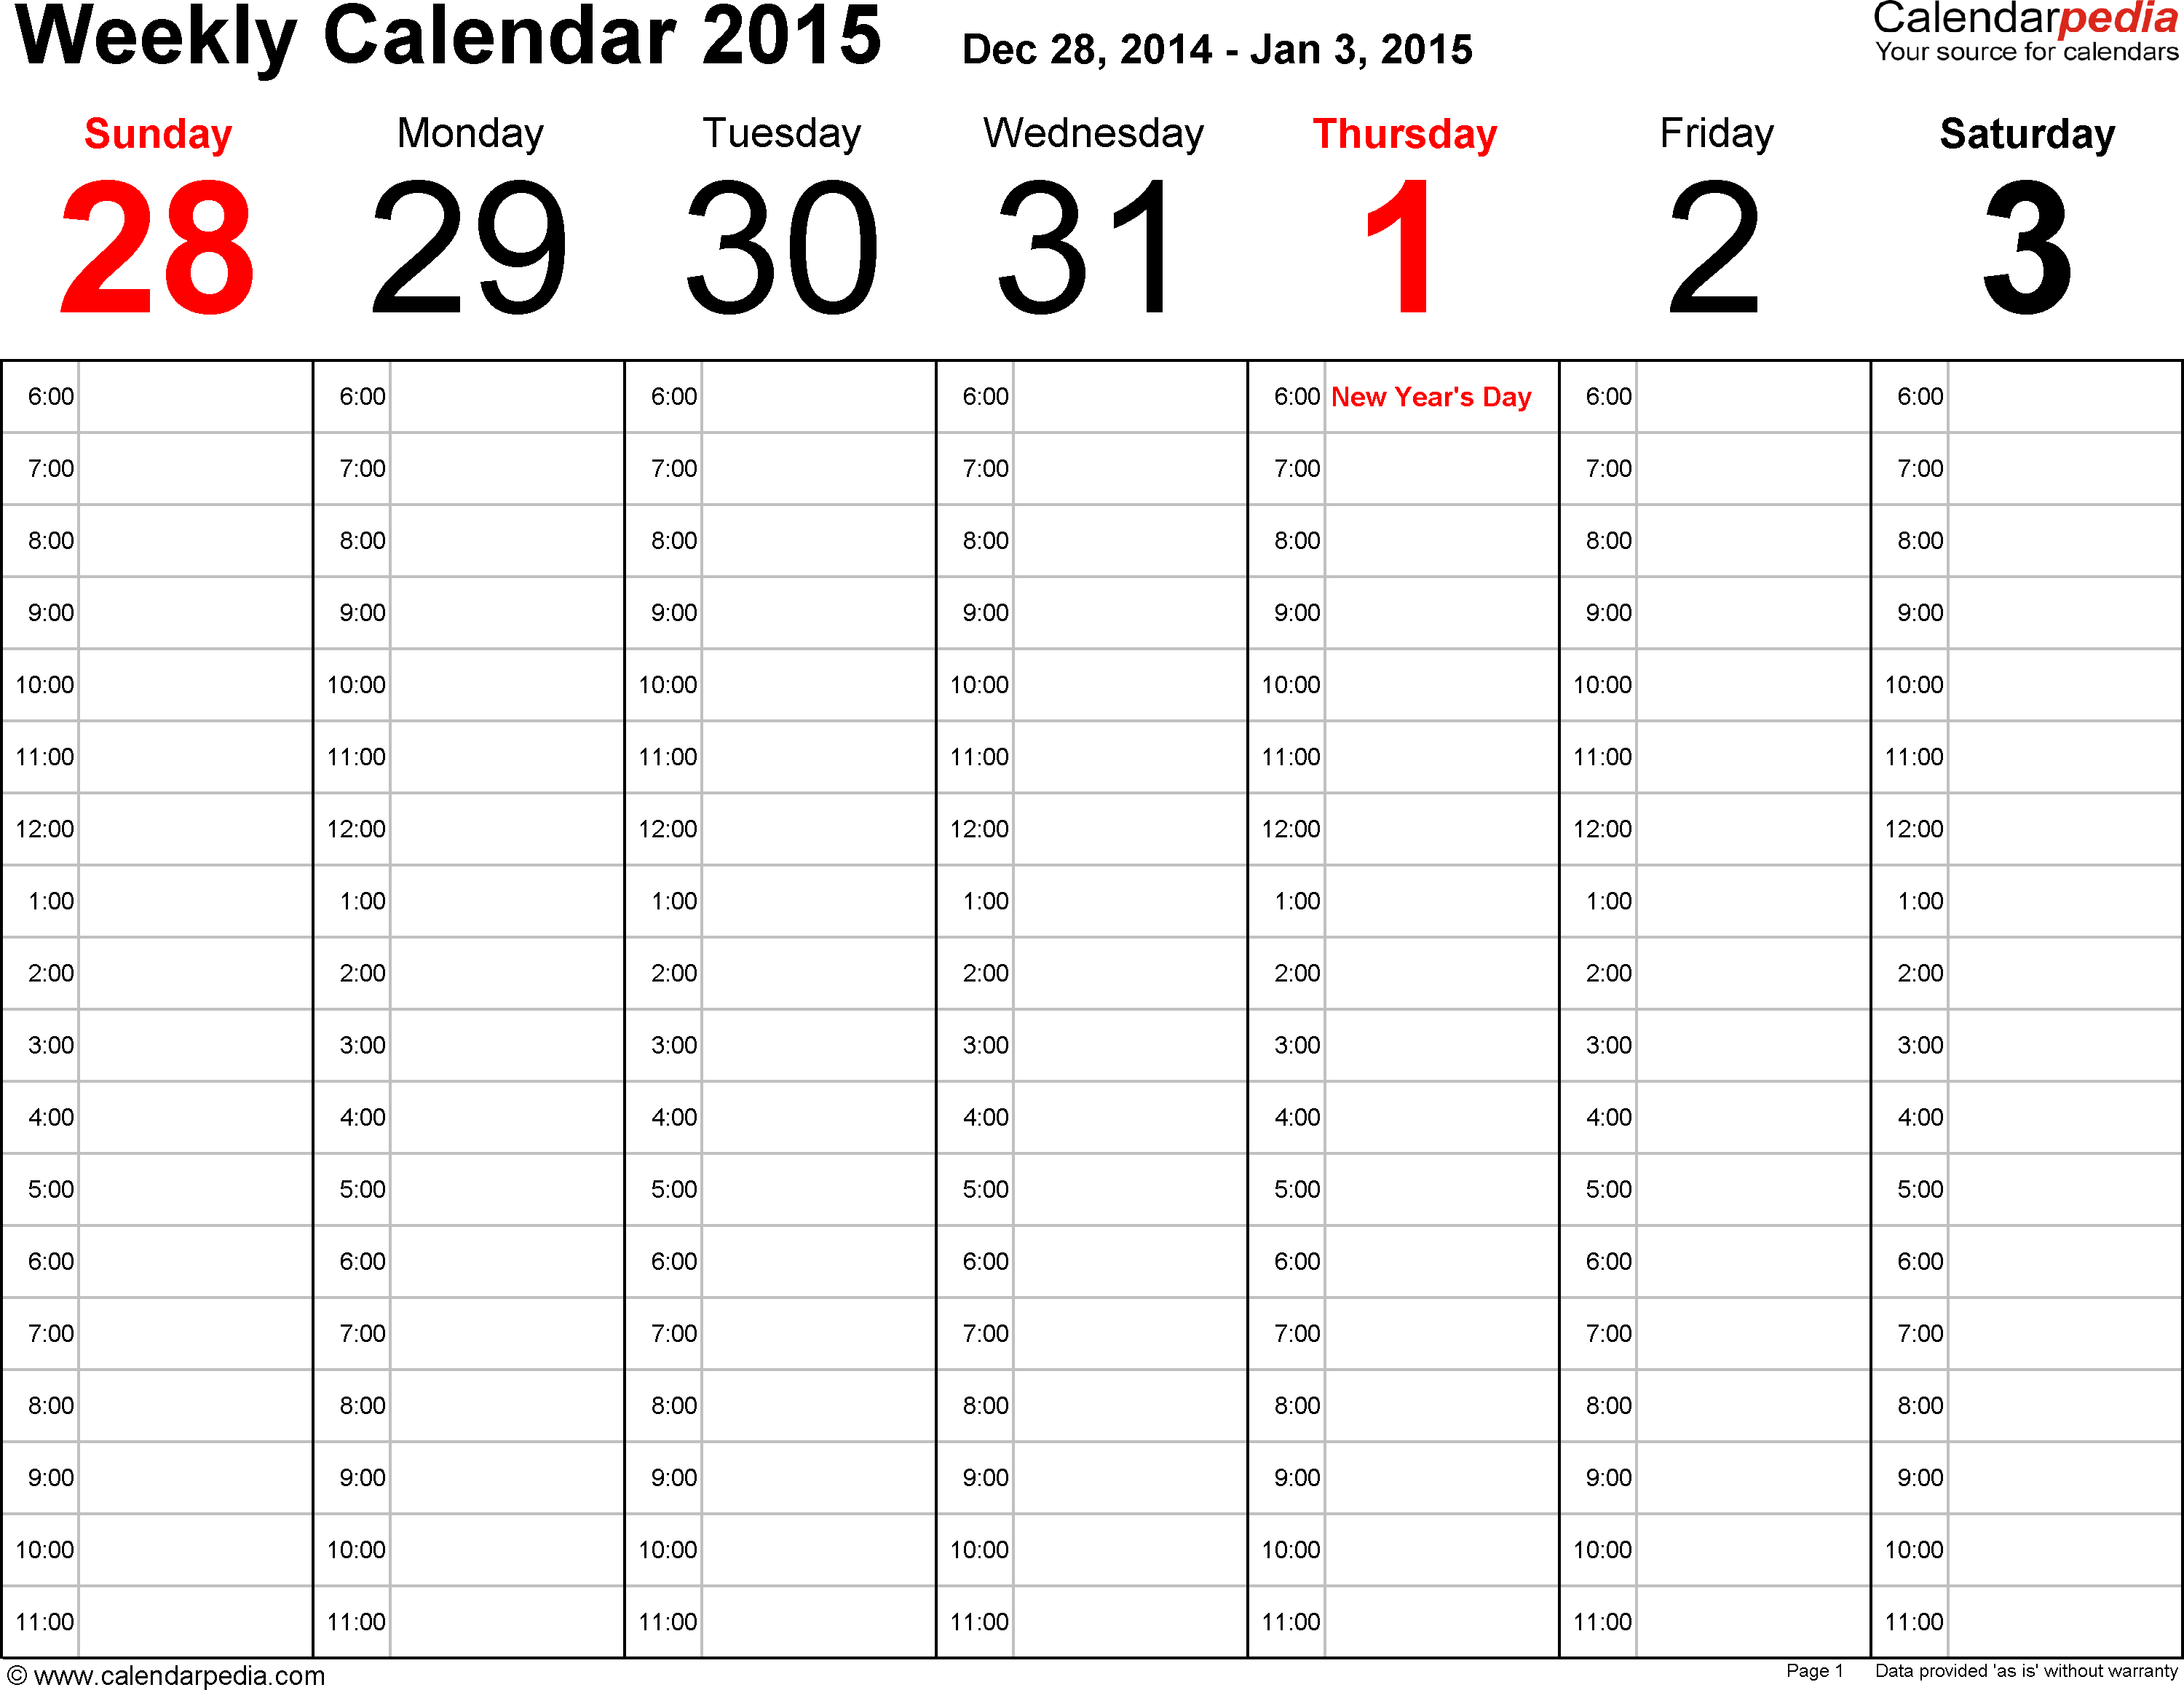 Weekly calendar 2015 for PDF - 12 free printable templates